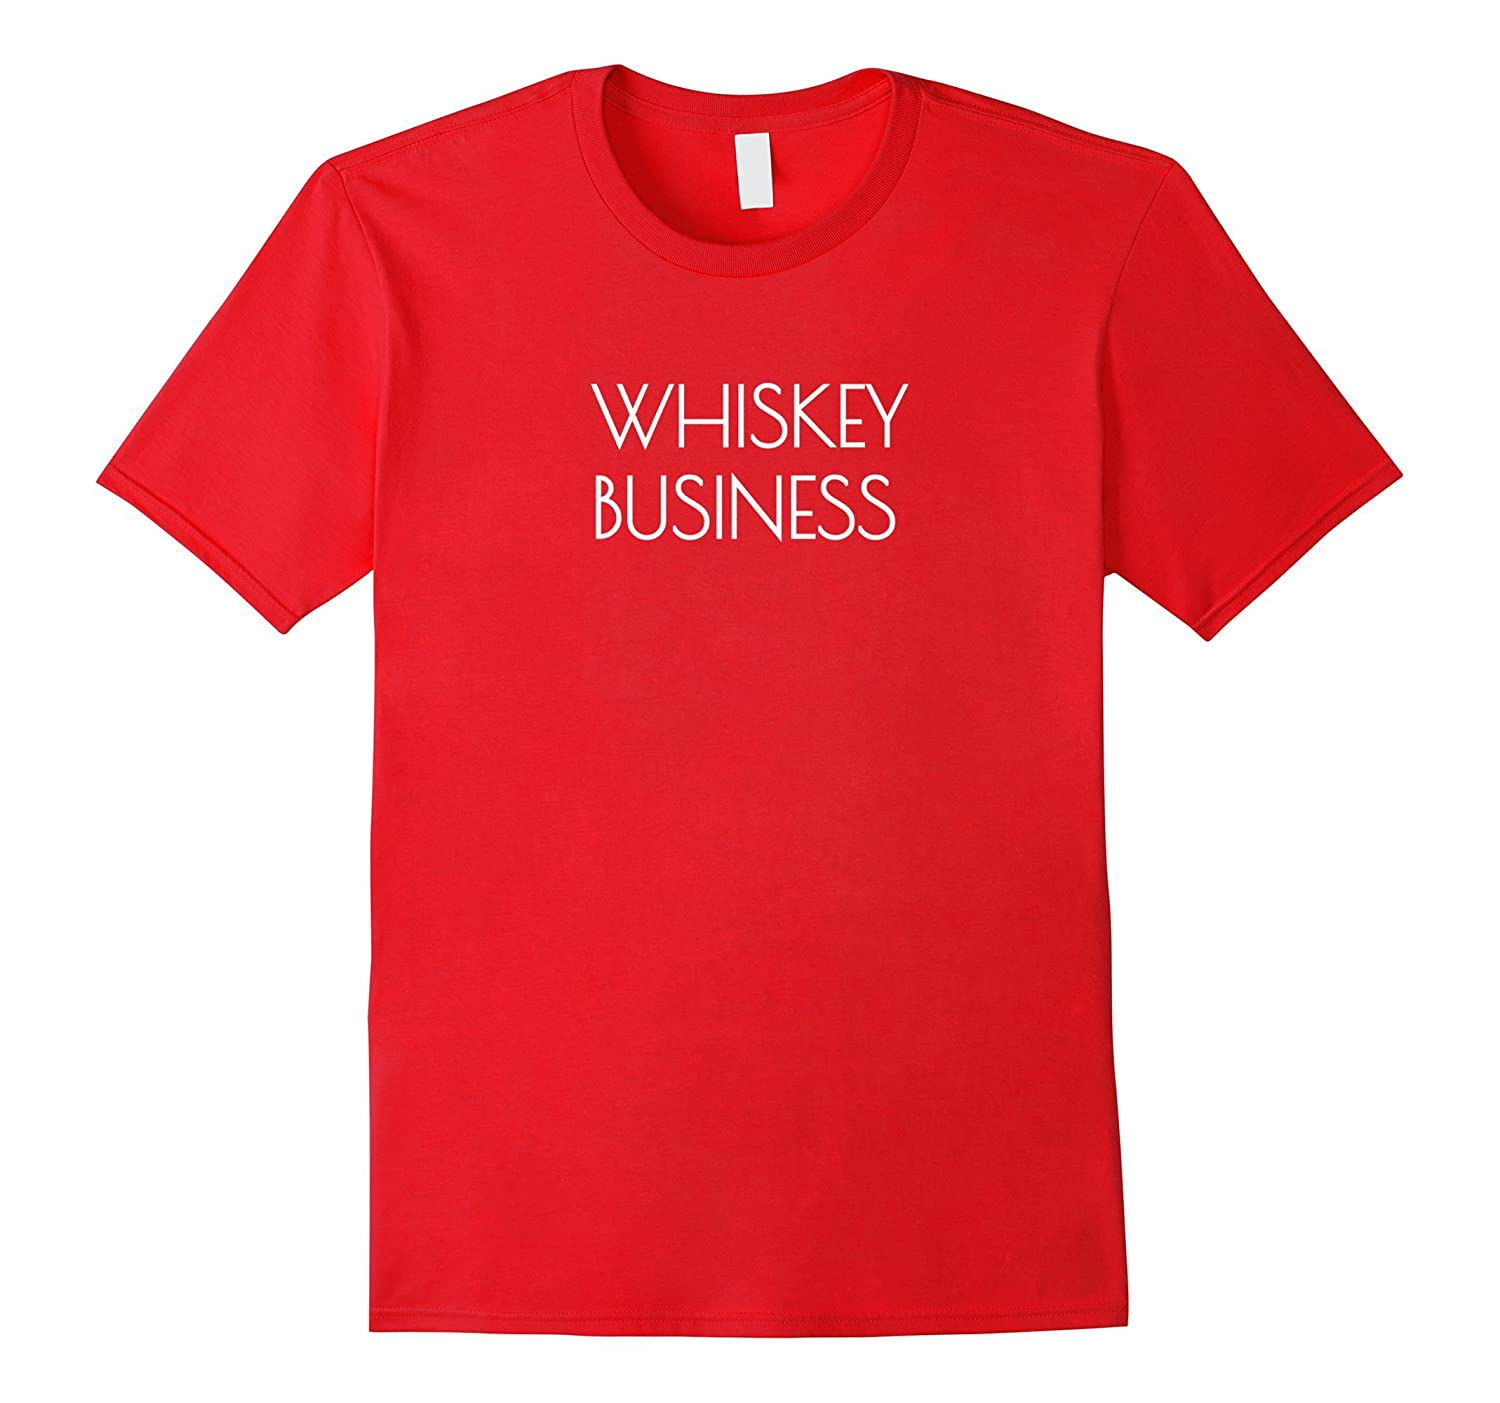 Whiskey Business Funny Drinking And Going Out T-Shirt-TJ